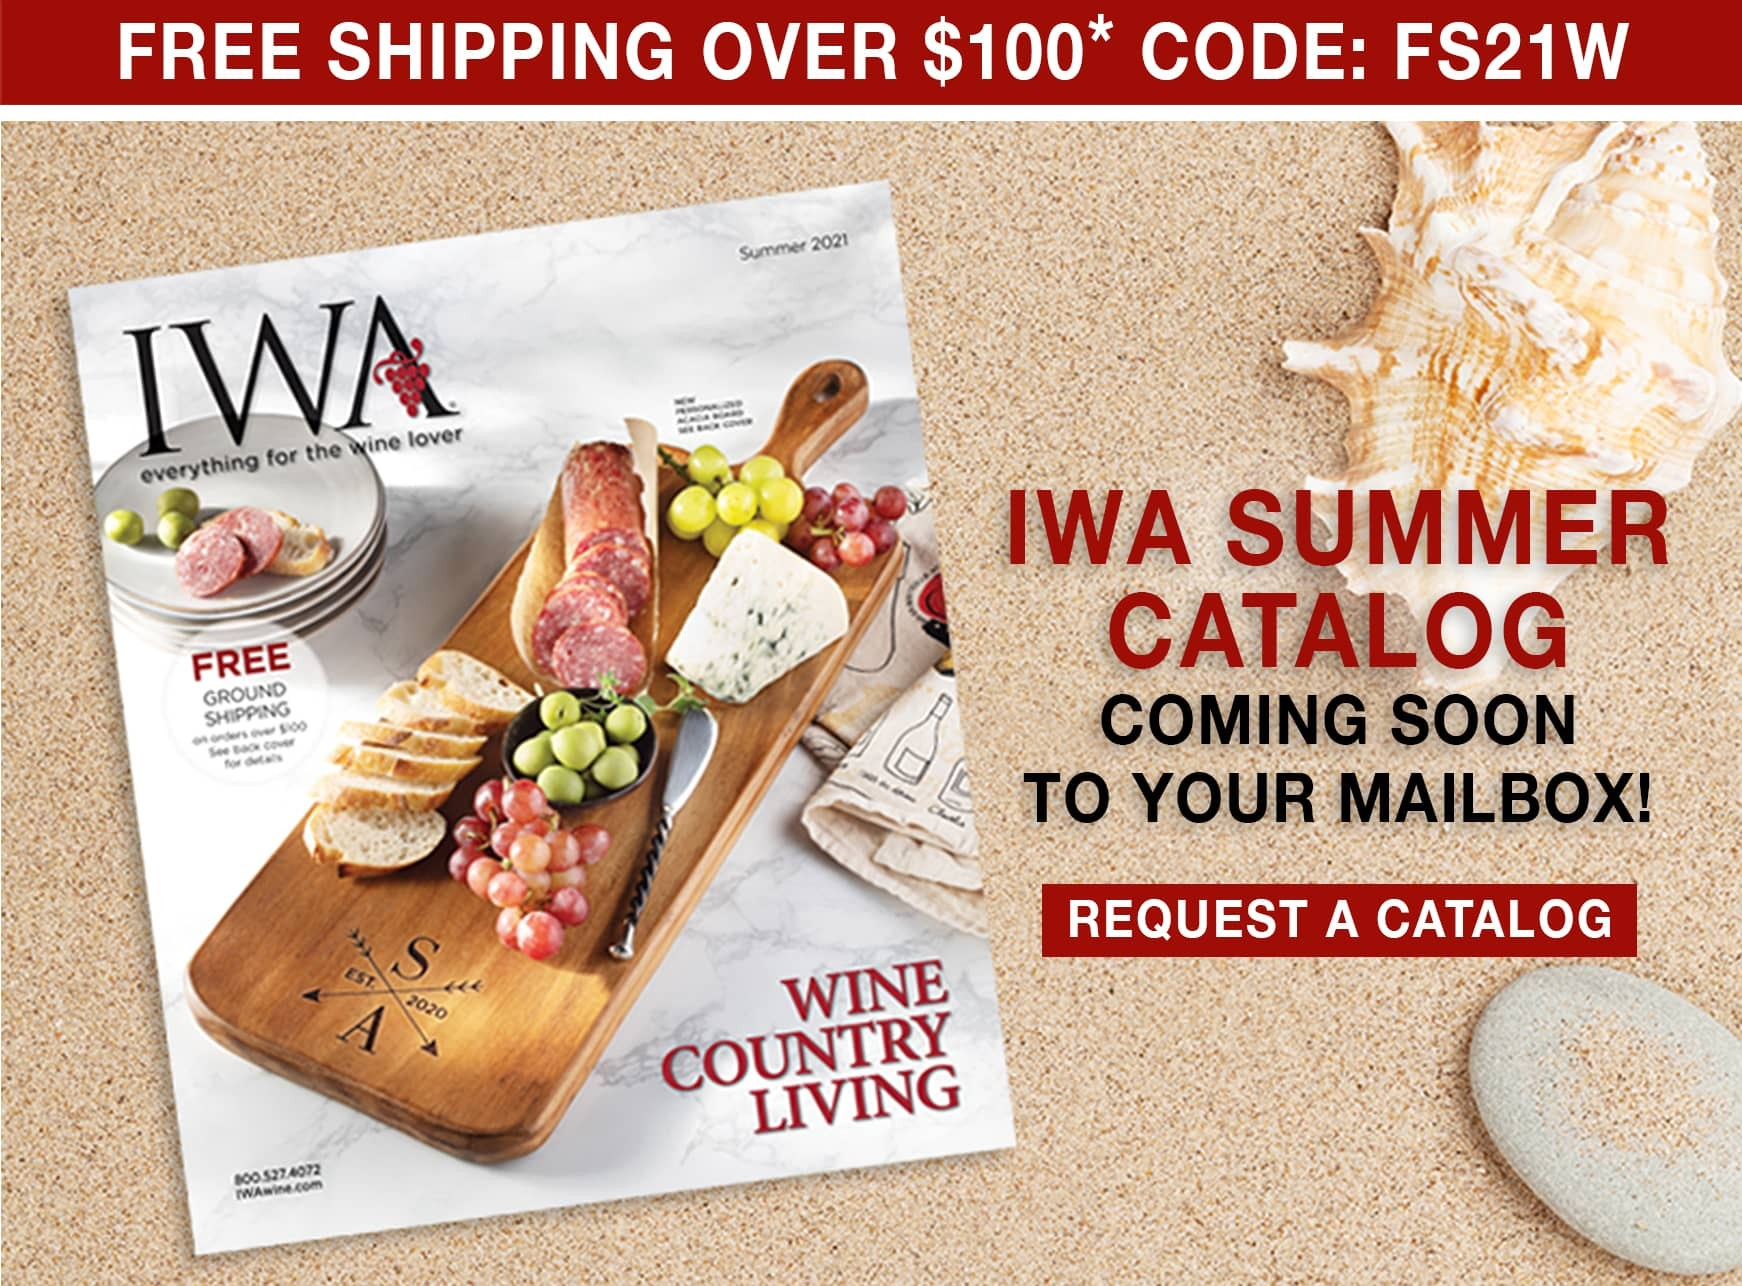 IWA Summer Catalog - Request a Catalog - Free Shipping Over $100 use code FS21W